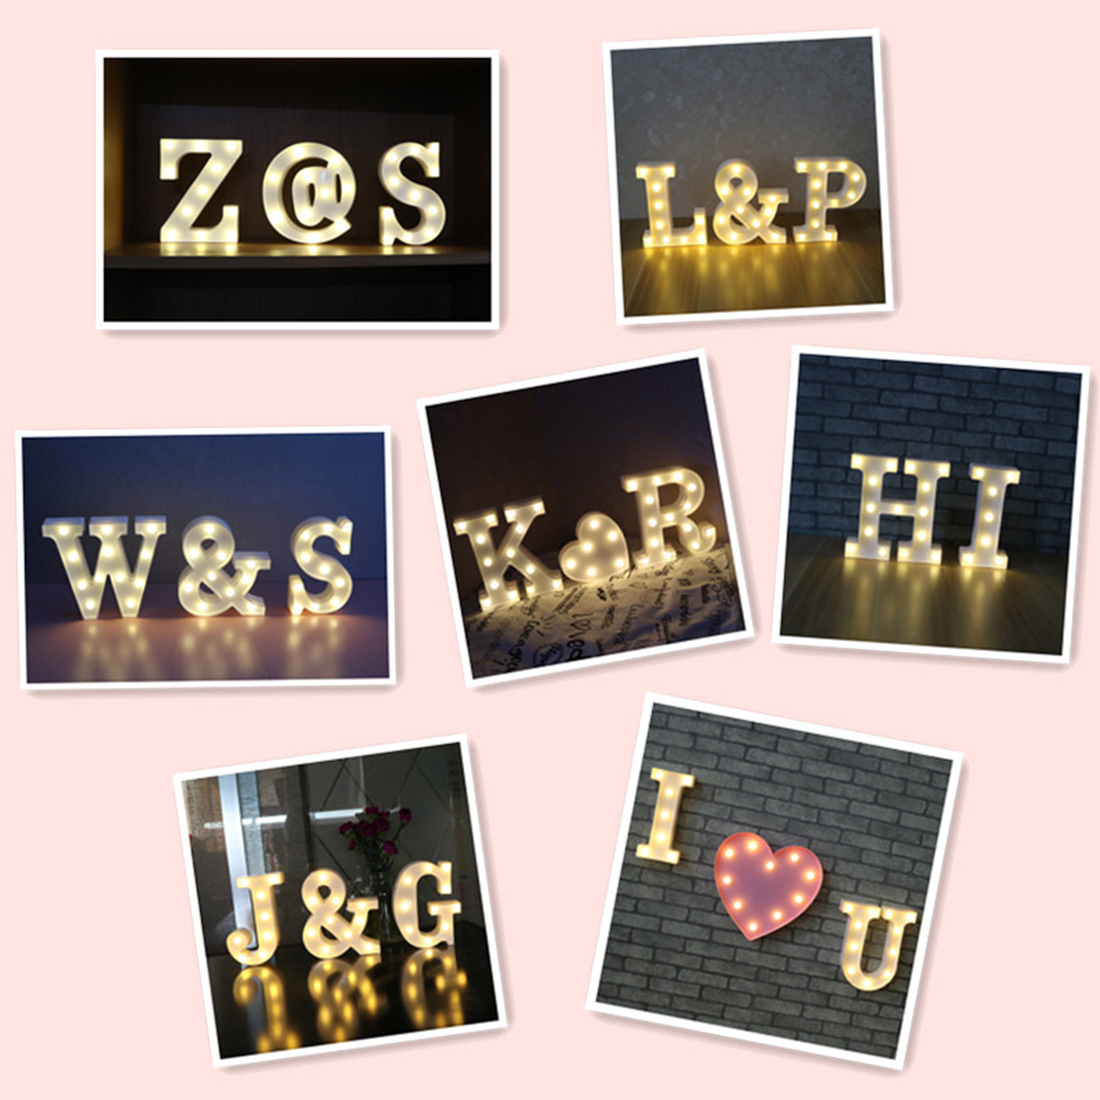 High Quality 26 Letters White LED Night Light Marquee Sign Alphabet Lamp For Birthday Wedding Party Bedroom Wall Hanging Decor fashion letters and zebra pattern removeable wall stickers for bedroom decor